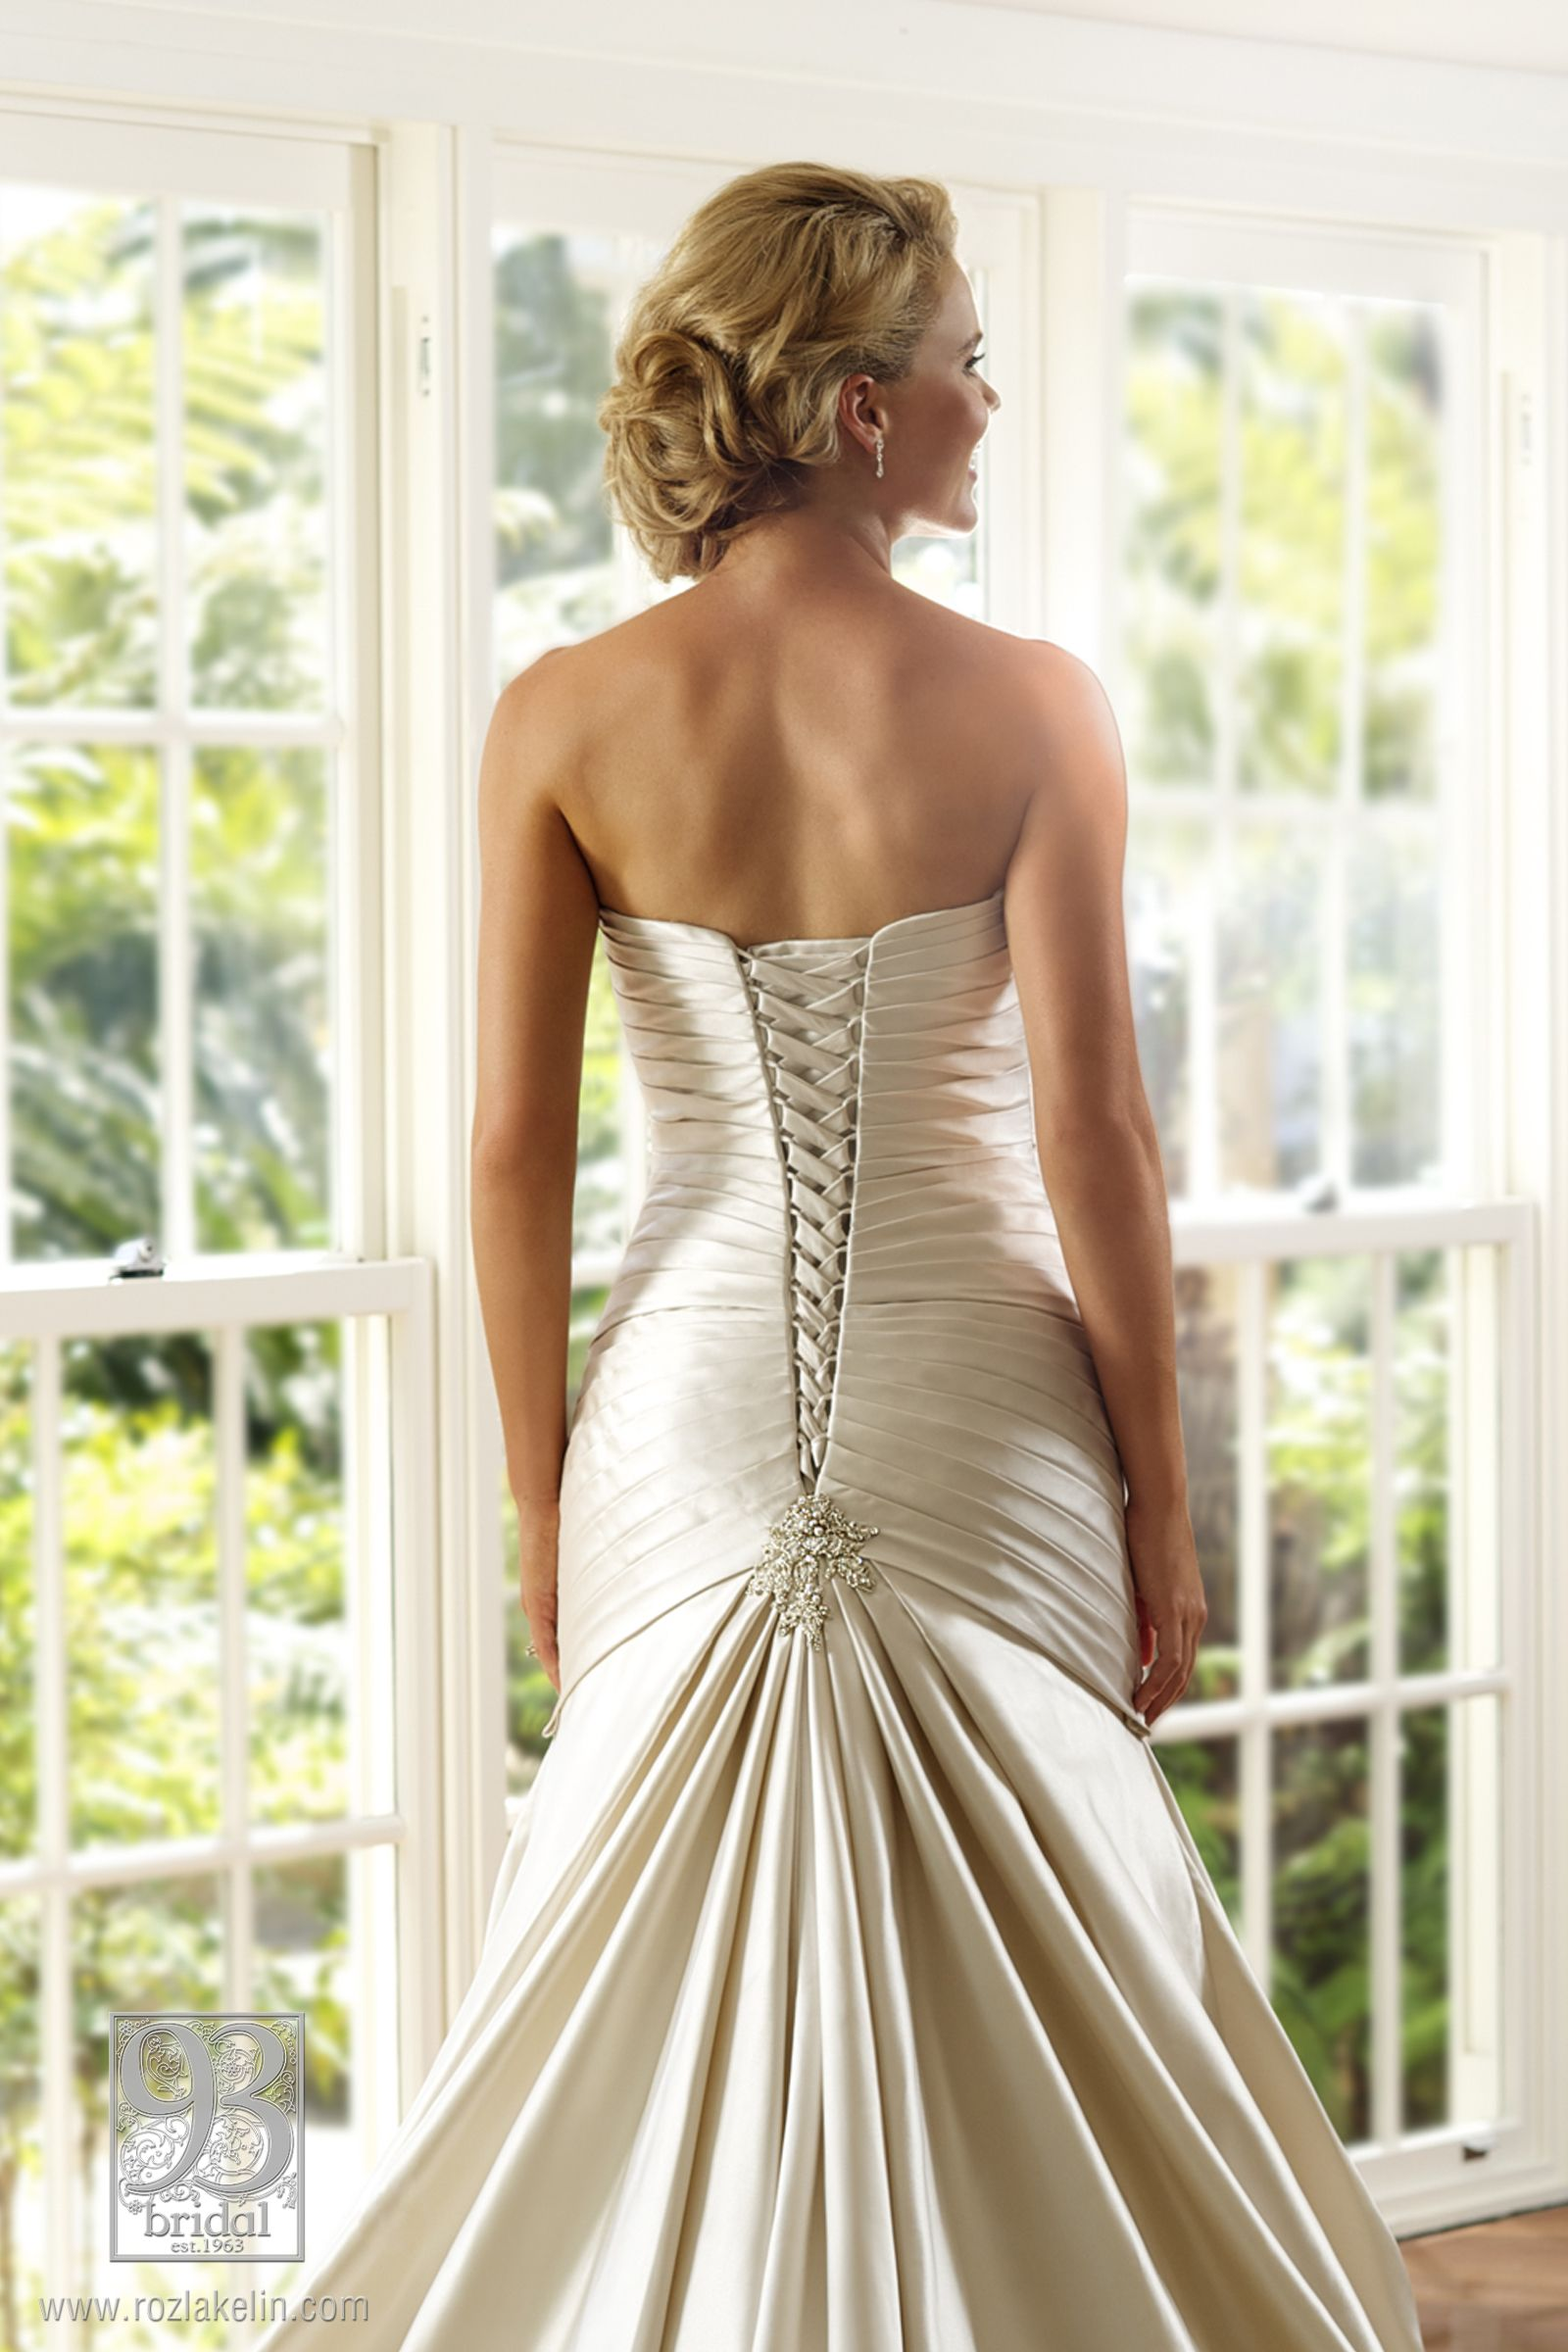 Brand brand bridal style ruby rose style code t strapless